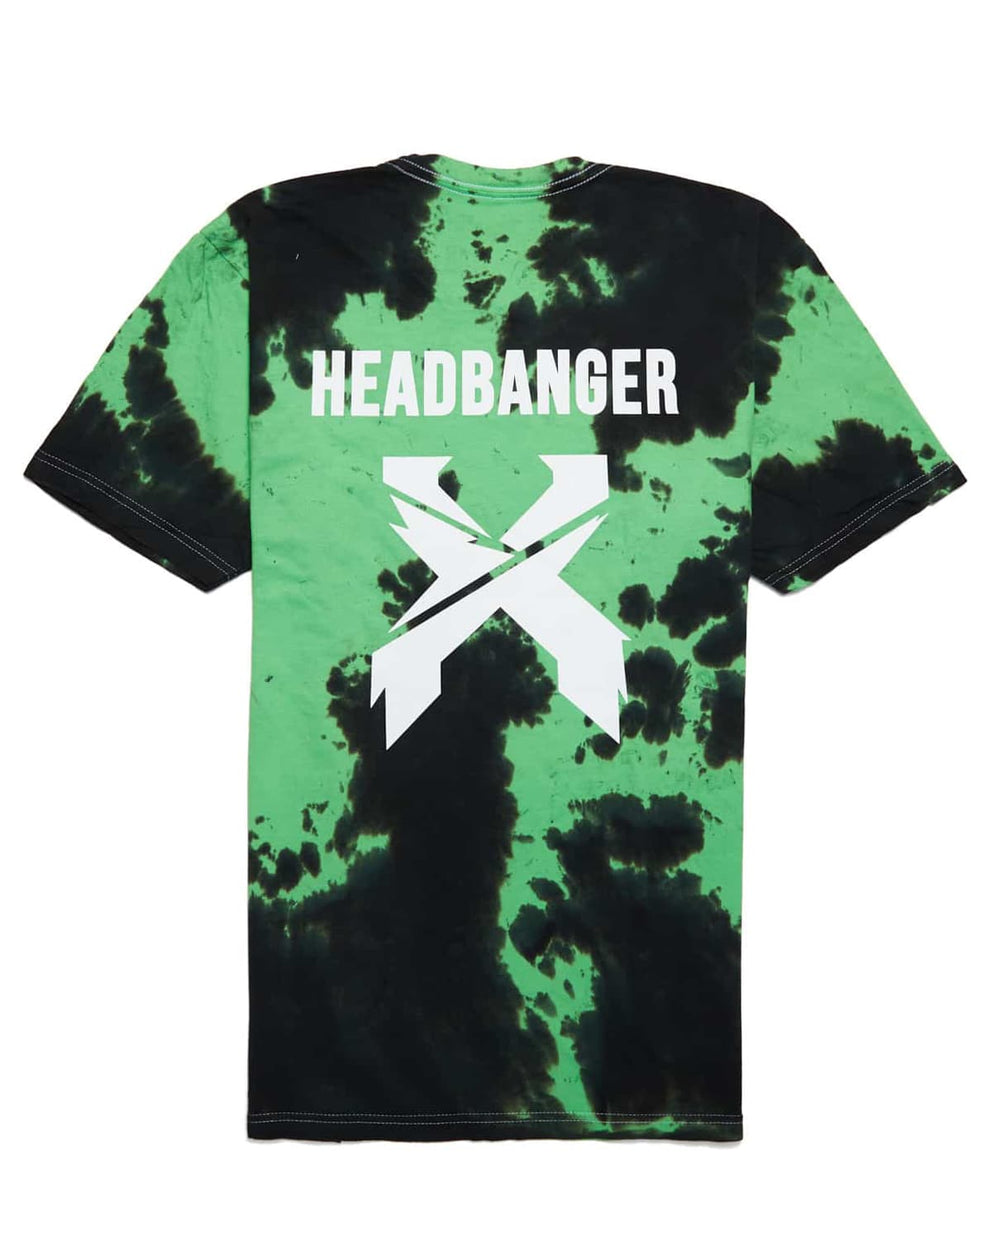 Excision 'Headbanger' Tie-Dye Unisex T-Shirt - Green